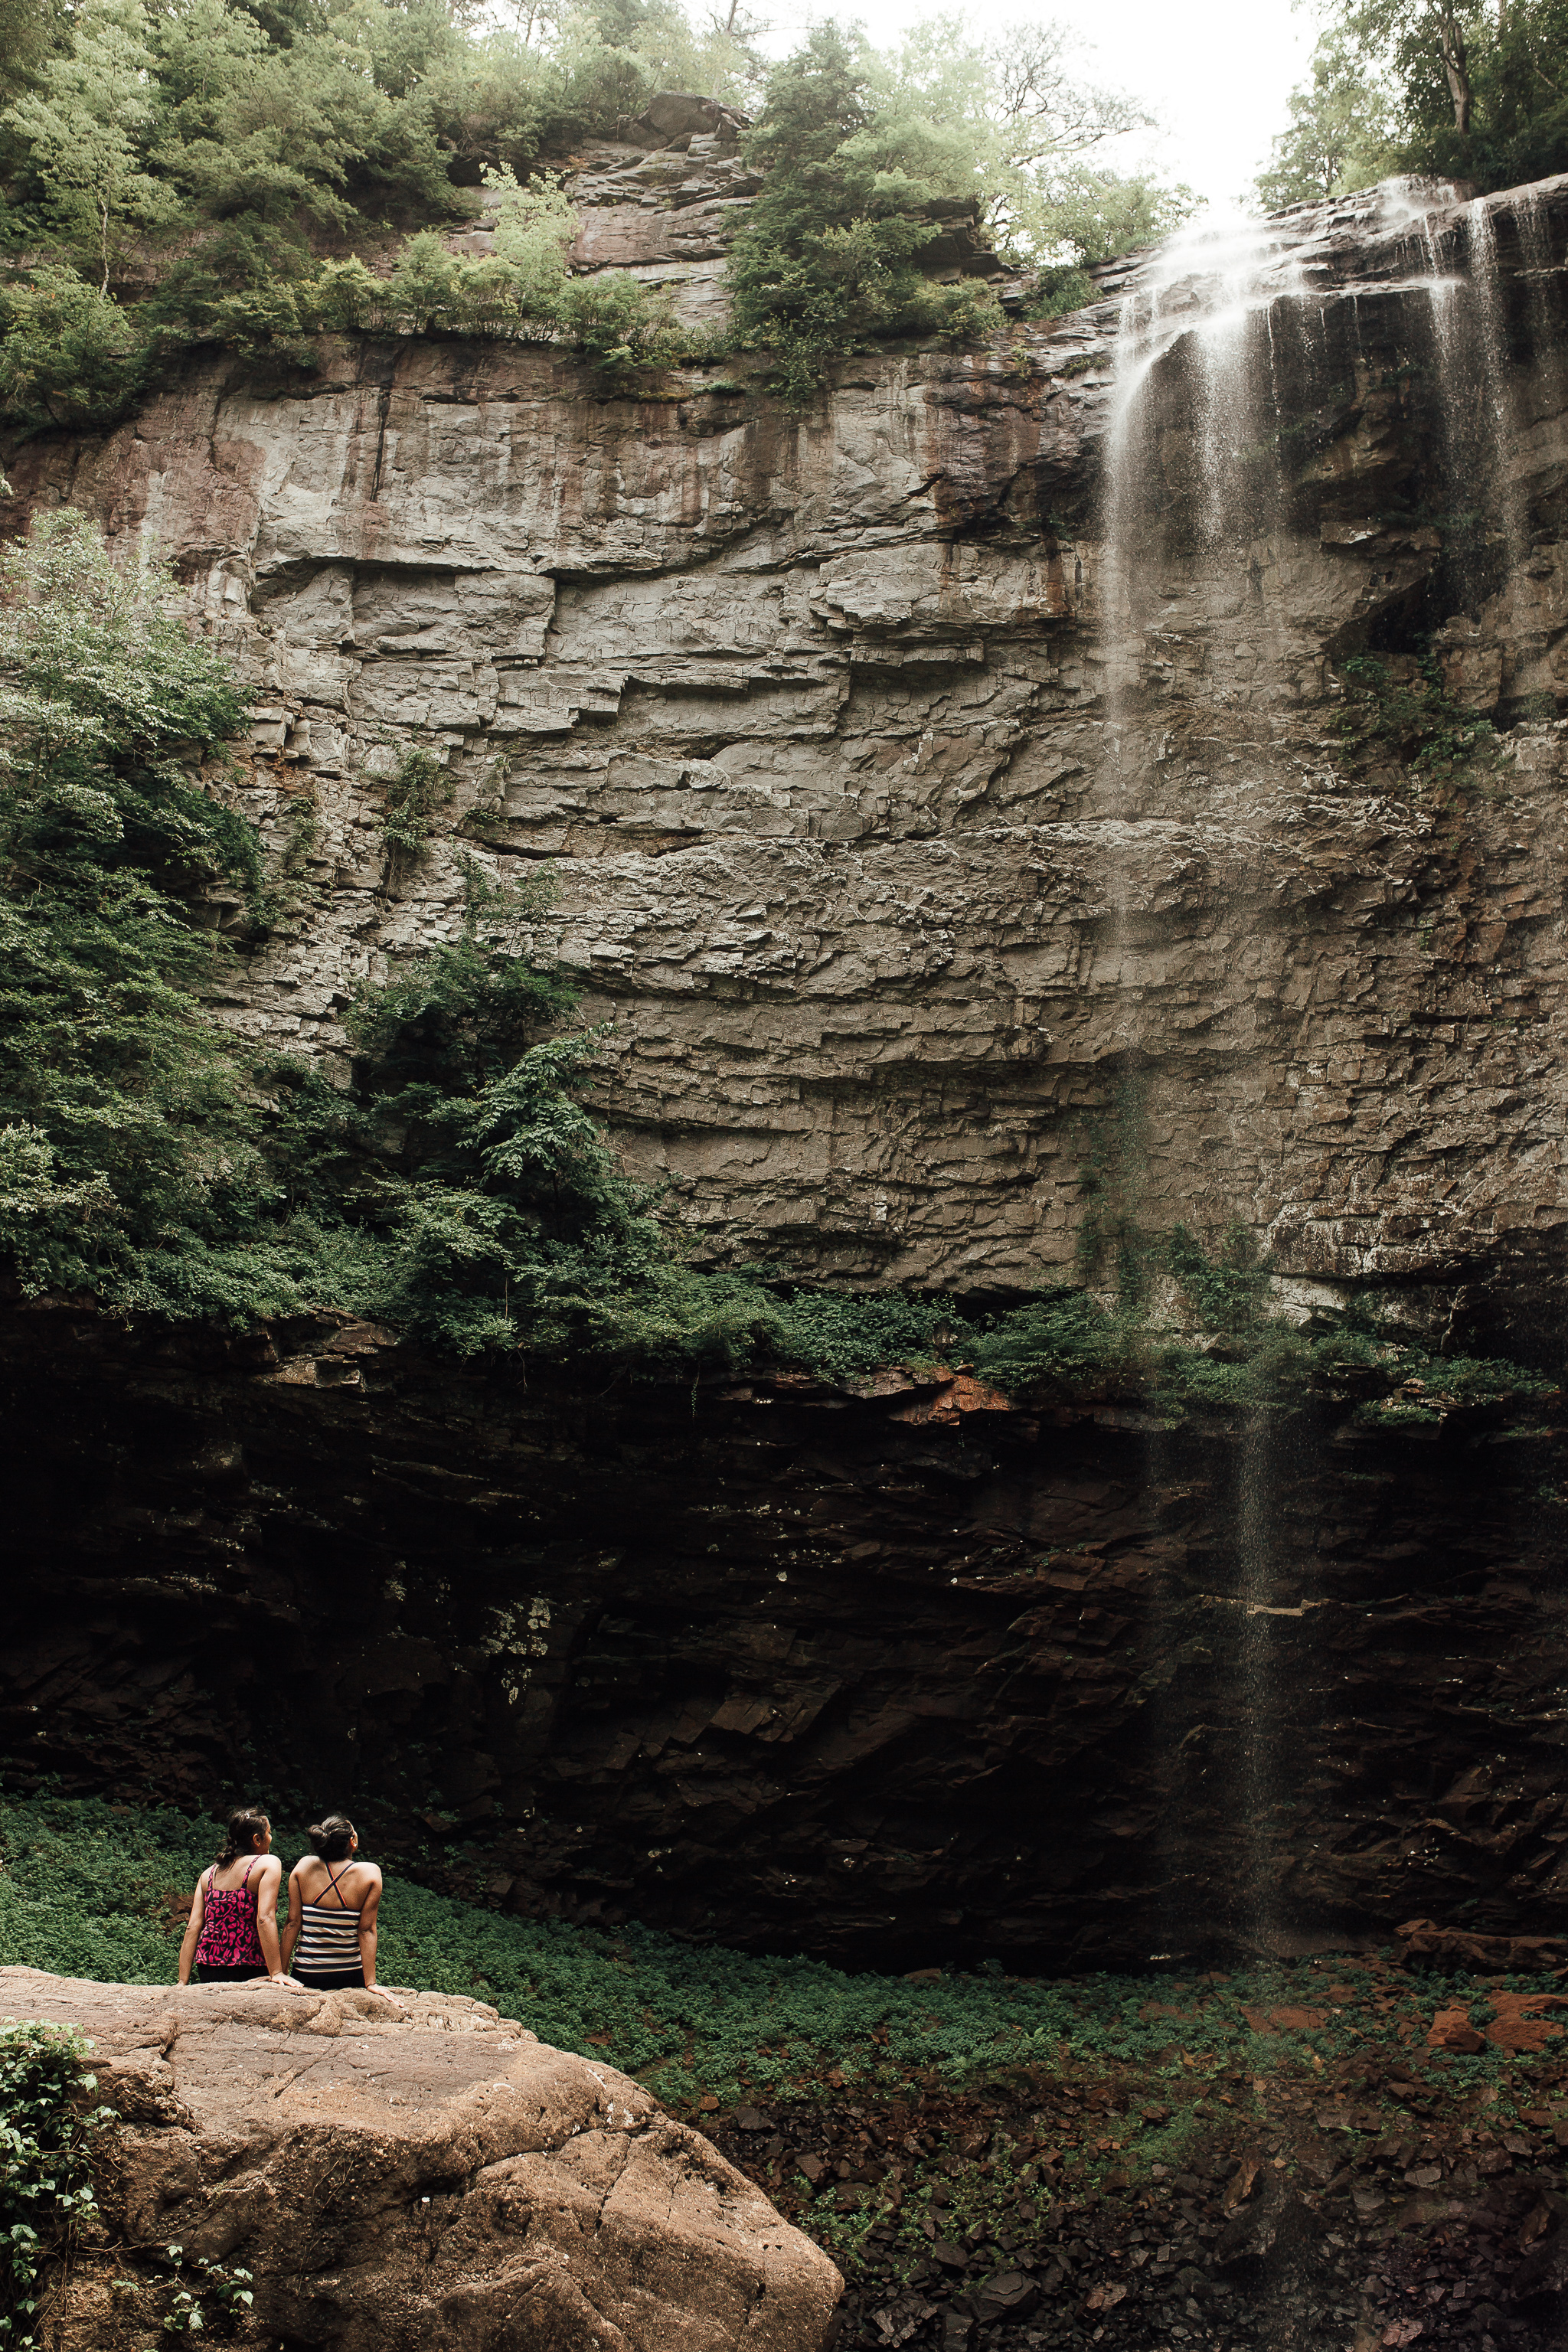 This photo is probably my favorite from our weekend trip to Fall Creek Falls and Chattanooga. I don't know these girls, or their story, but I think that's part of why I like it so much. Whether they're sisters, partners, best friends, or whatever bond they have,  I got to capture them sharing this moment together taking in this incredible, towering waterfall hanging above them. I imagine that Monday morning they went back to work like everyone else... but on Sunday, they were adventurers, travelers, explorers...